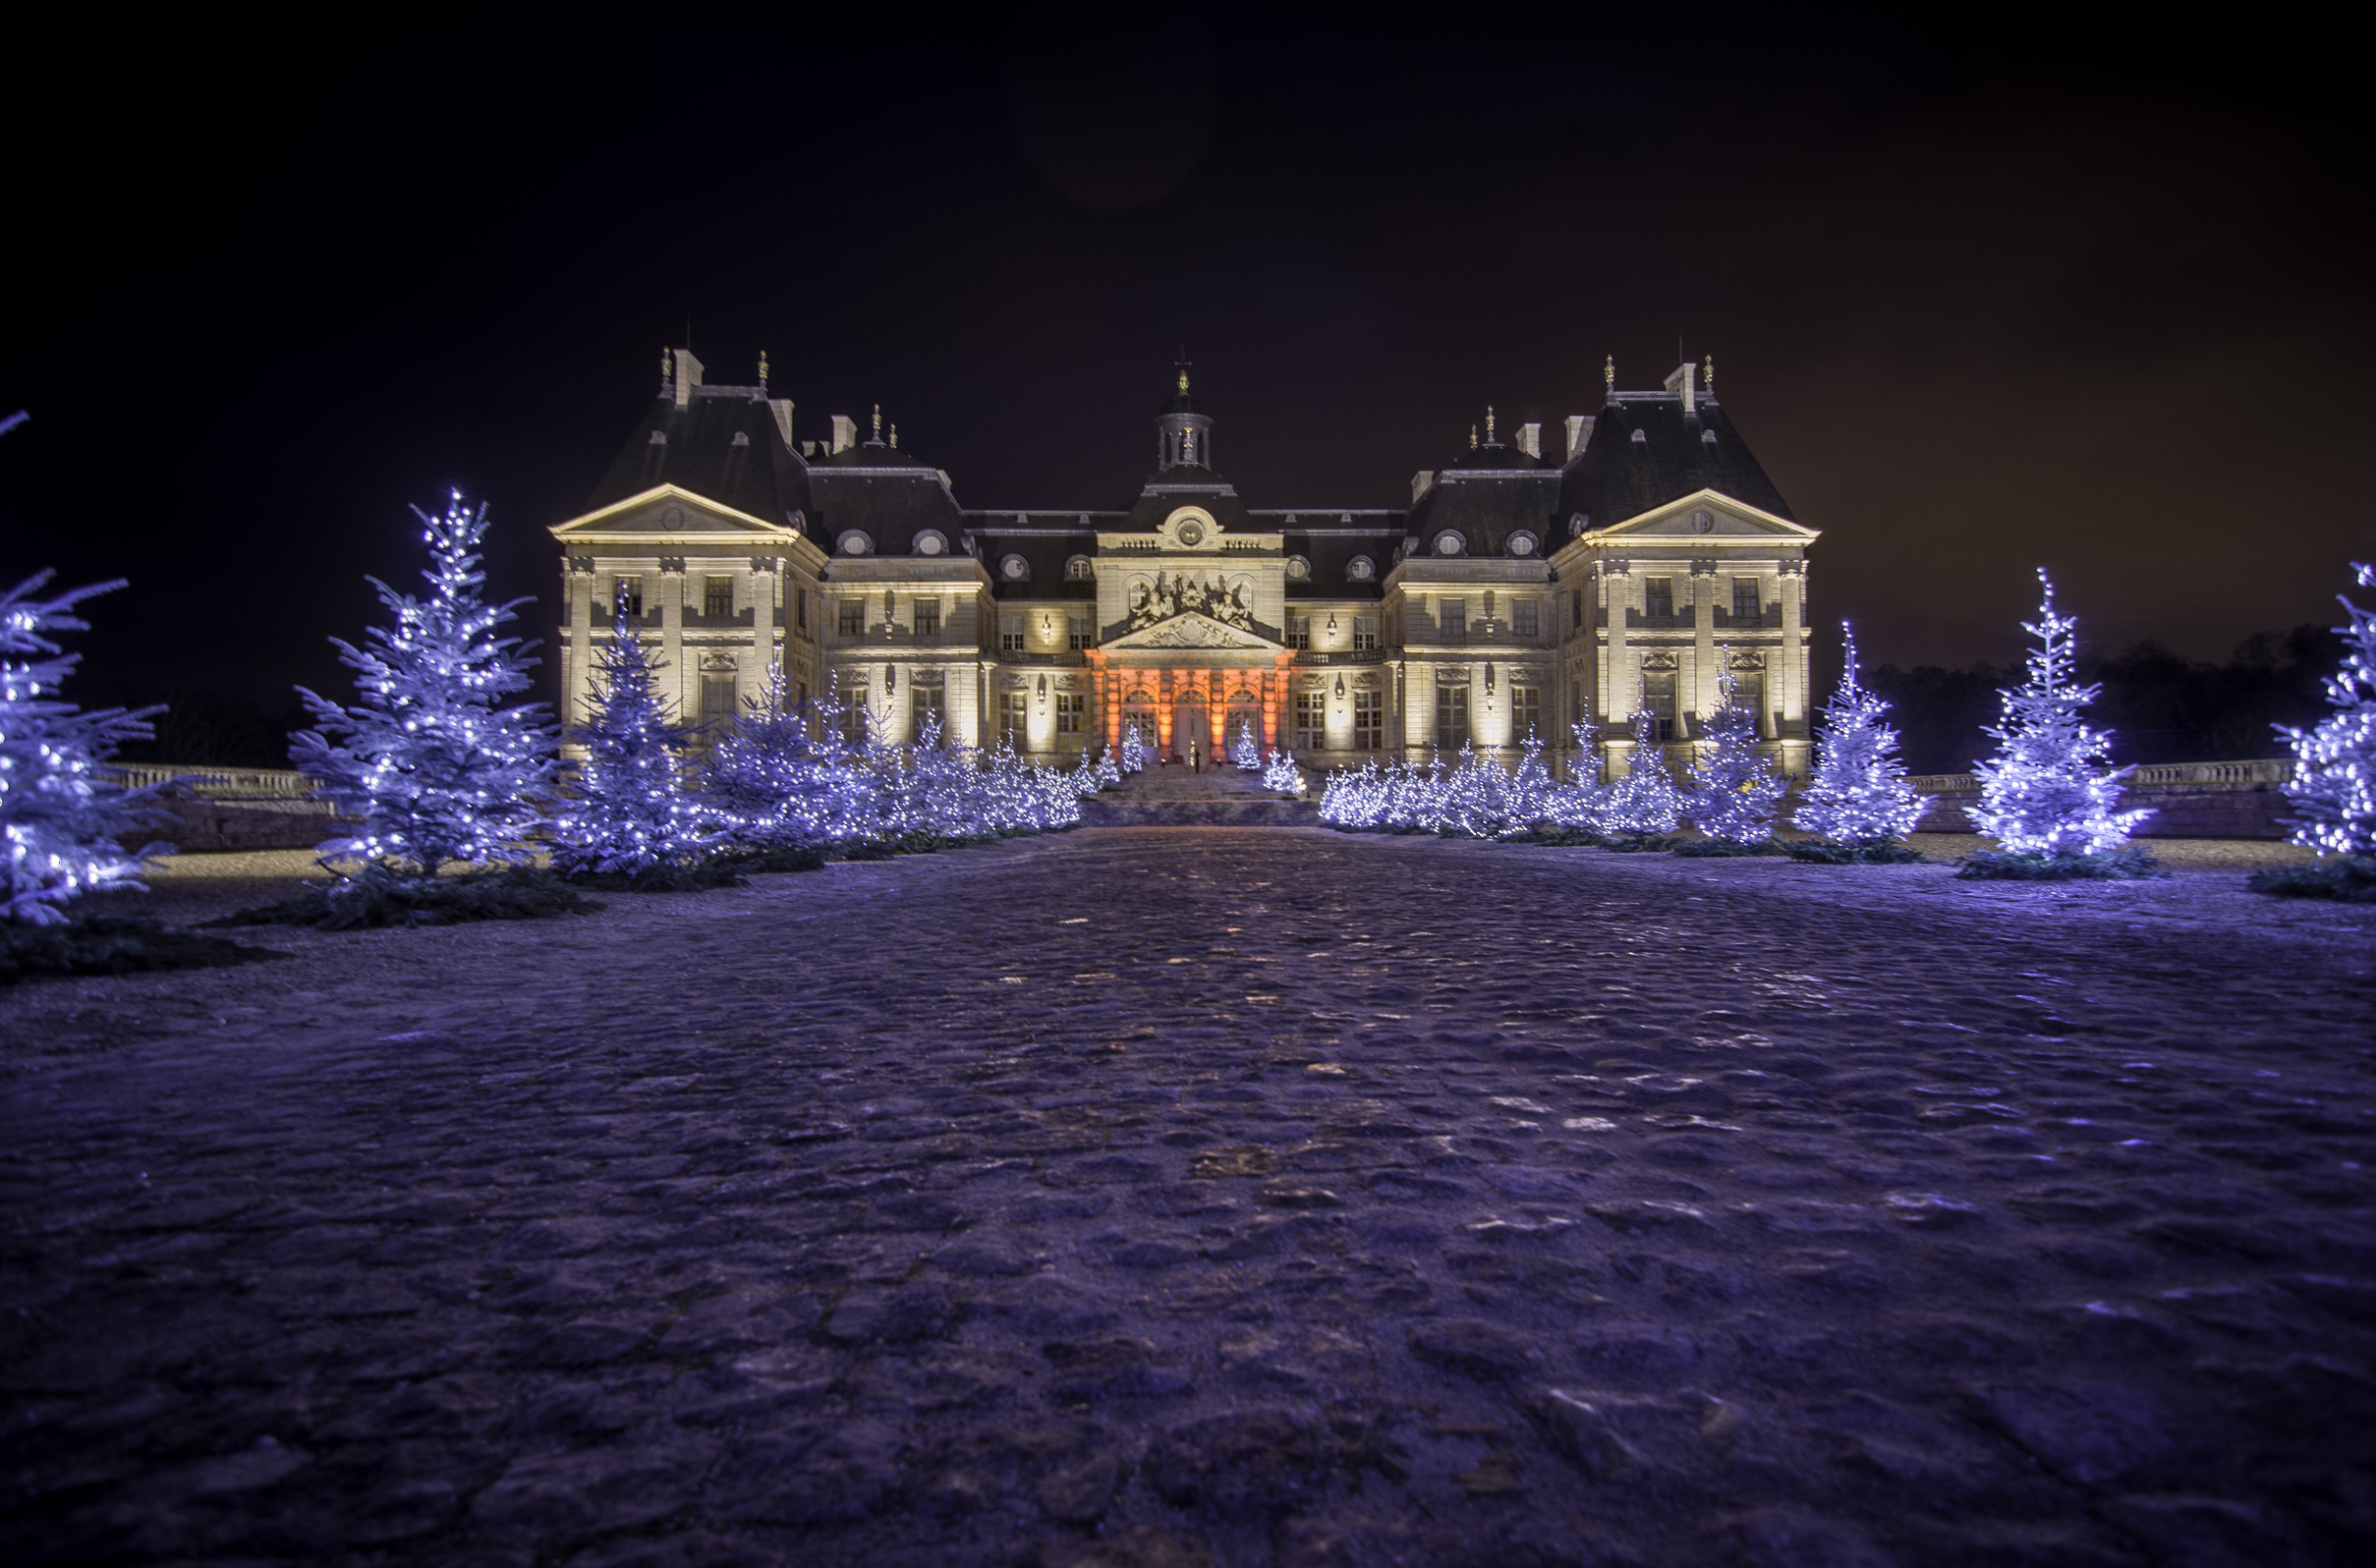 Christmas in Paris: Christmas at Château de Vaux-le-Vicomte. Photo: Château de Vaux-le-Vicomte.